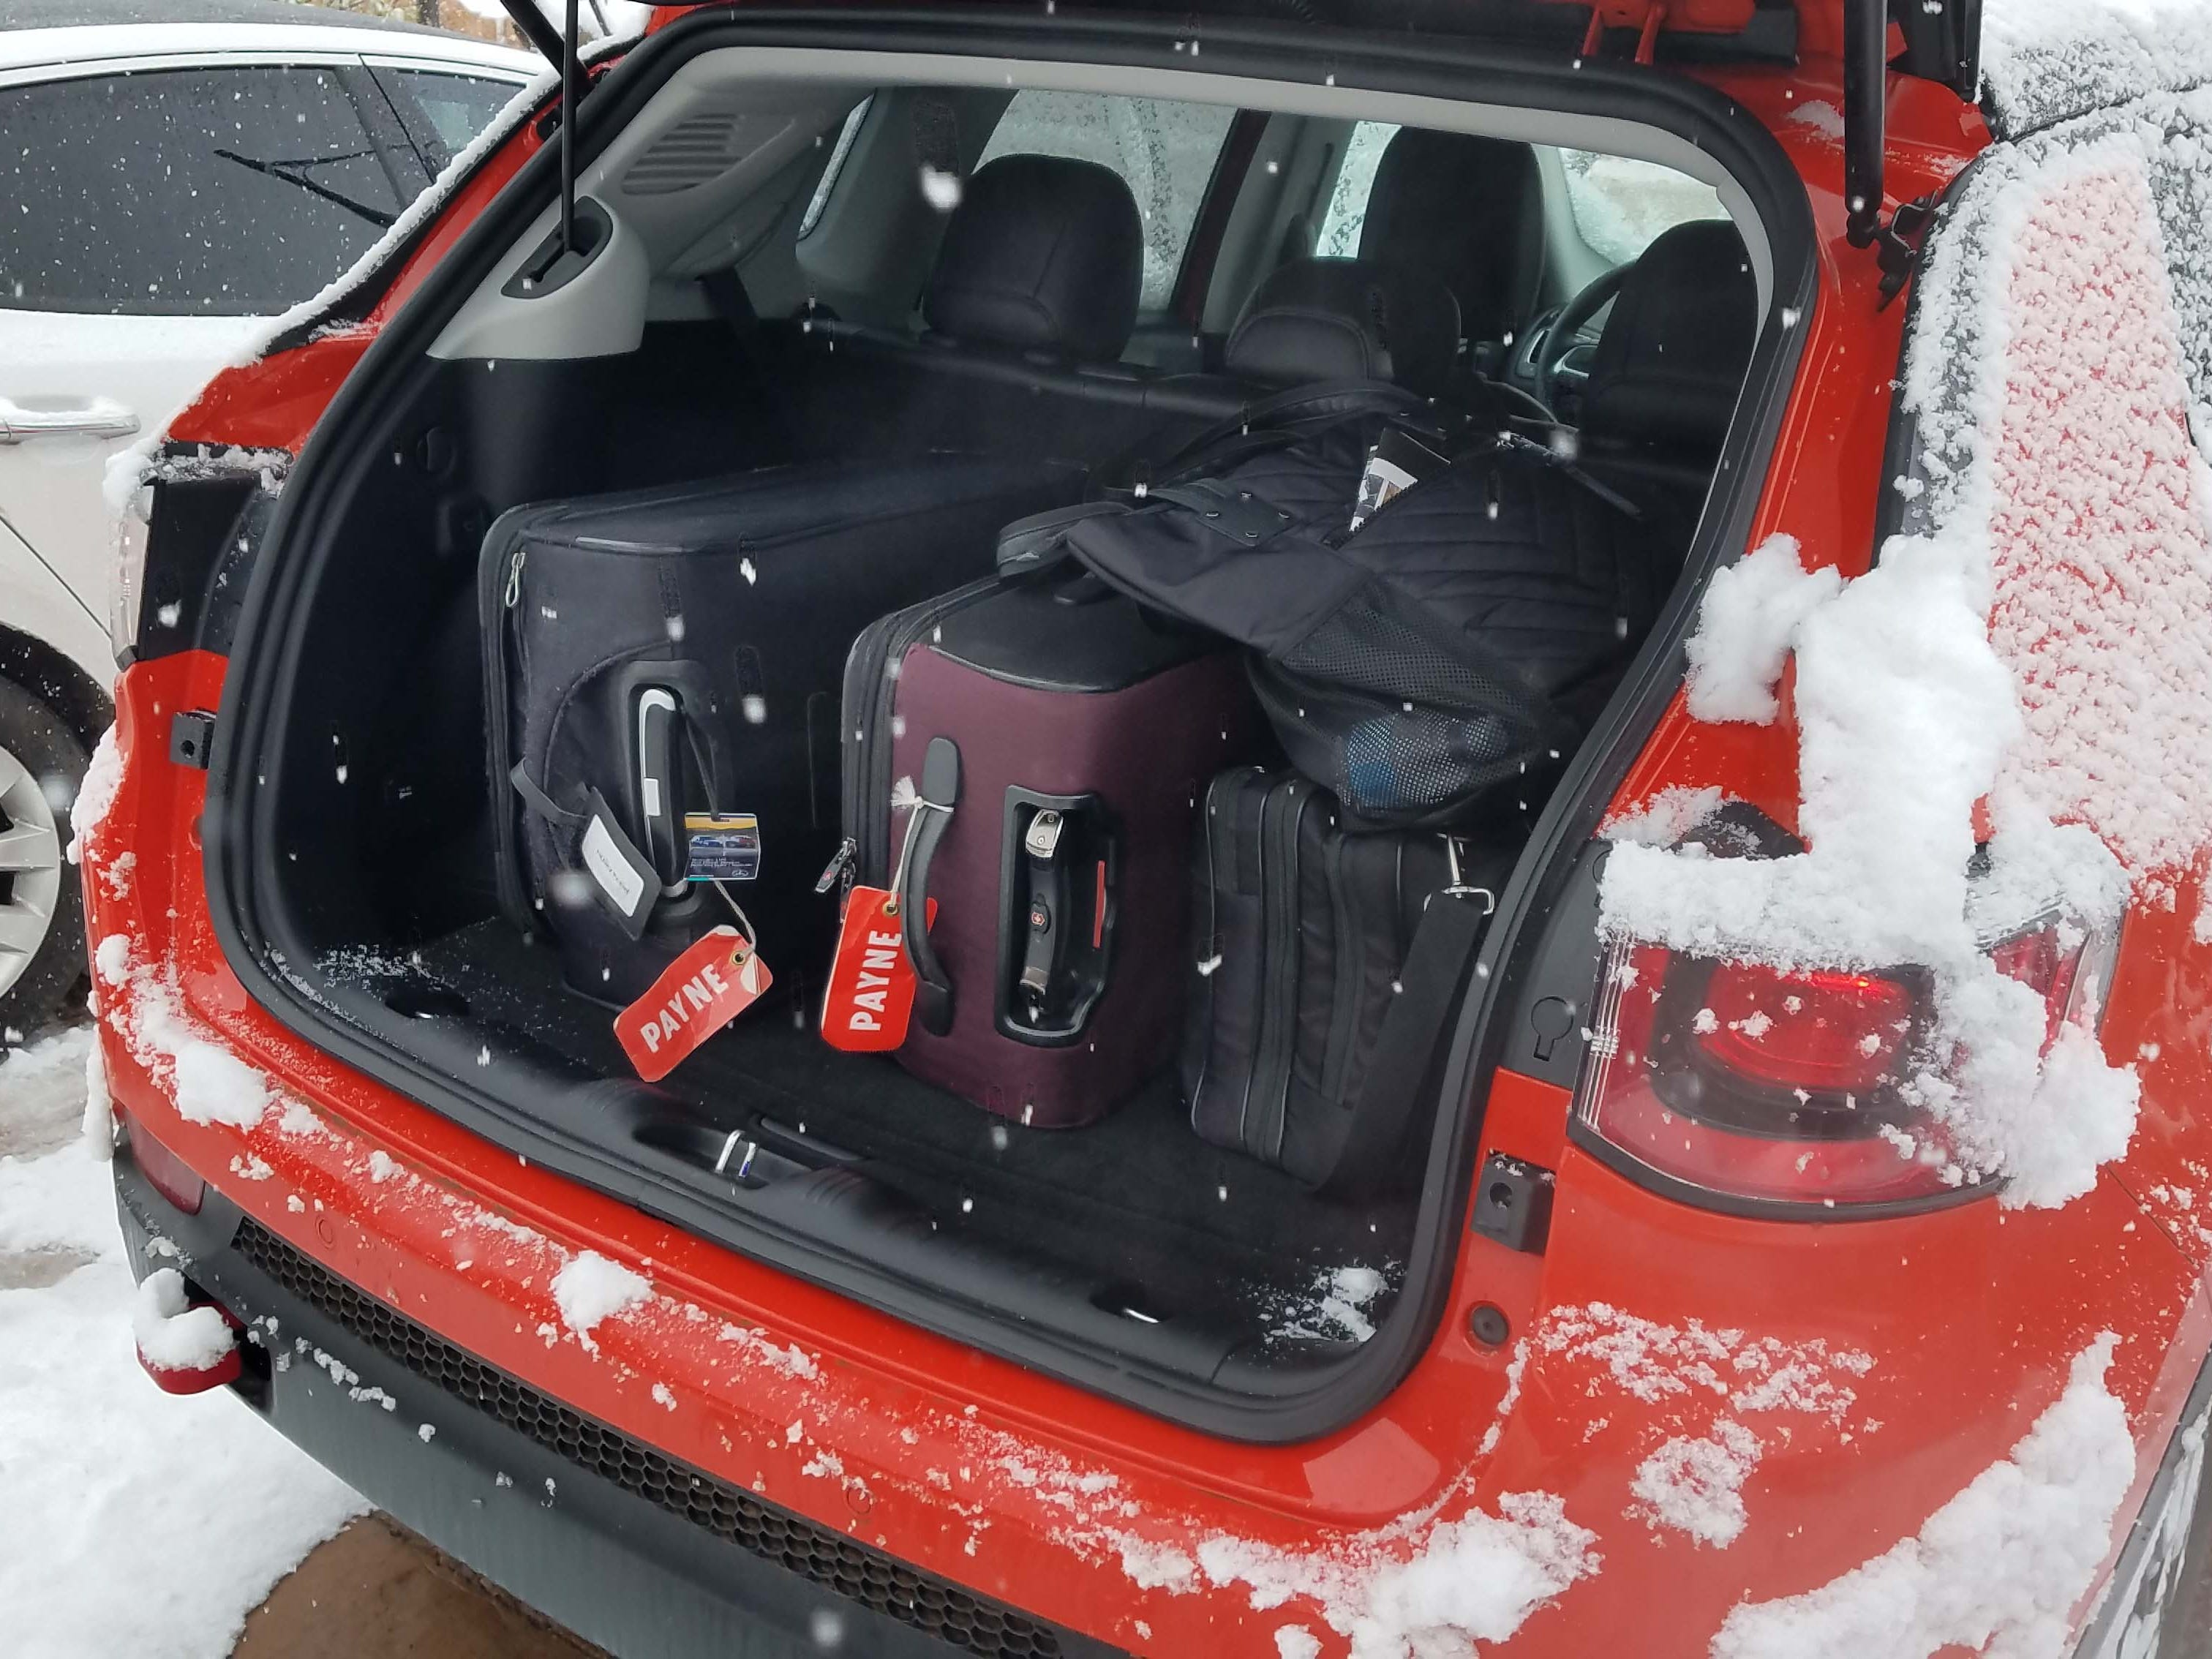 The Jeep Compass Trailhawk is a compact ute with plenty of cargo room in the hatch for a weekend adventure.